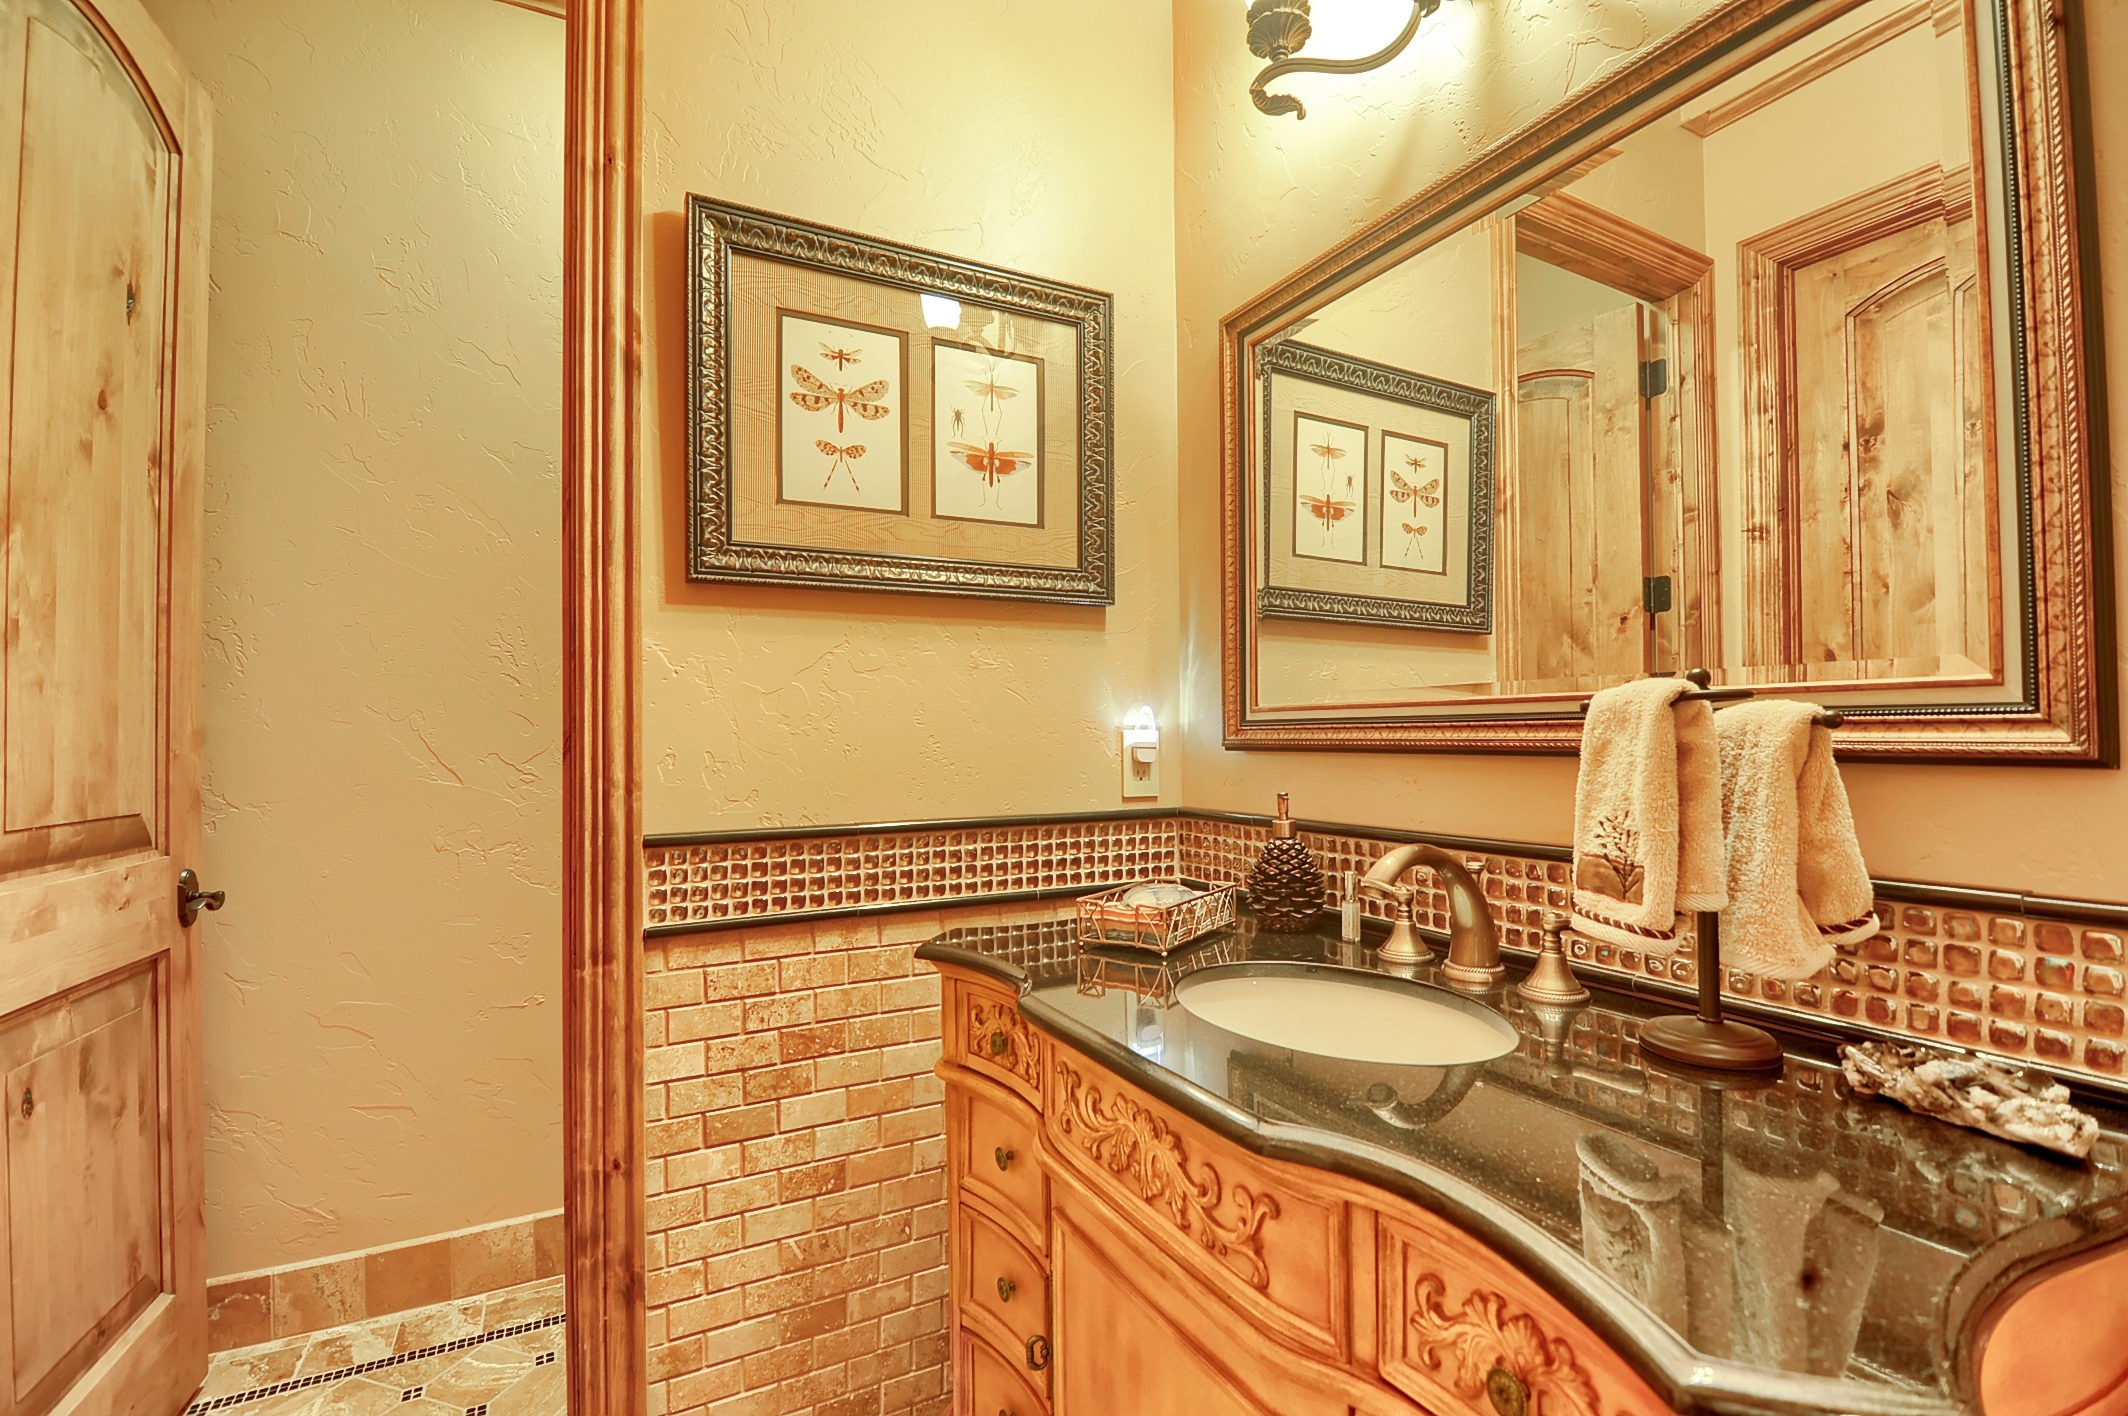 23 - Powder Room.jpg